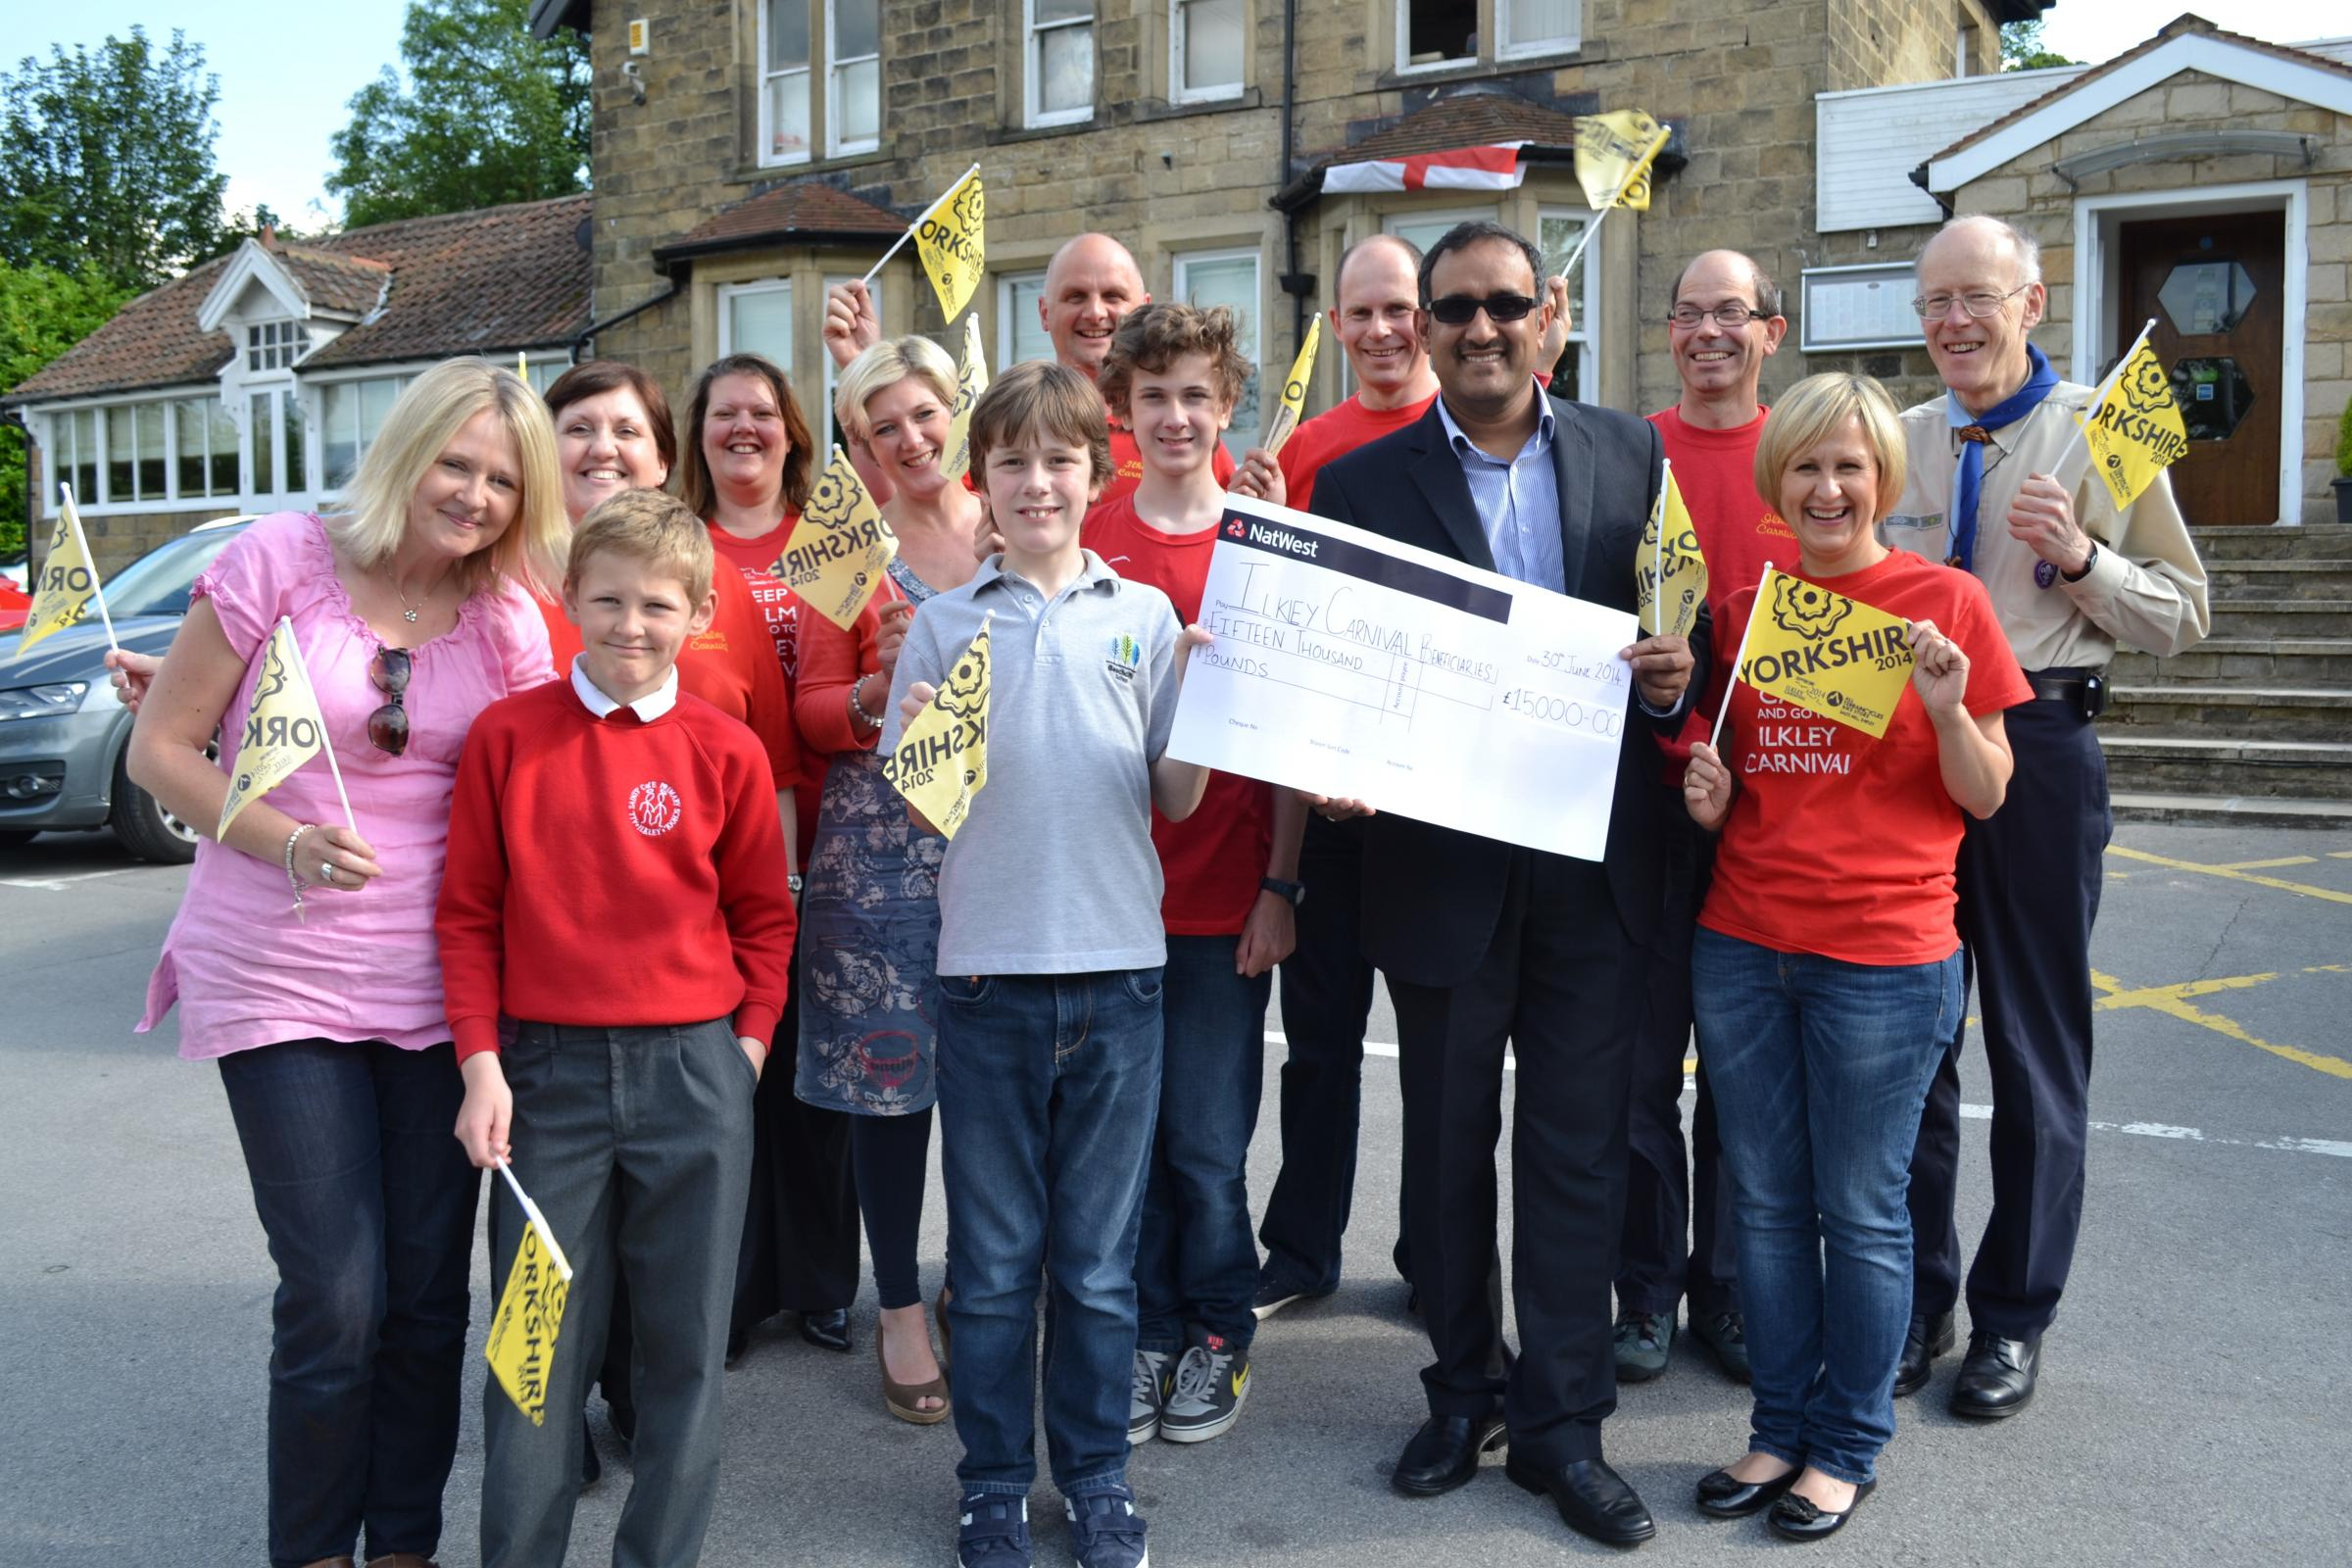 Beneficiaries, including Debbie and Ben Harris, Vicki, Oscar and Barney Street from LS29 and Robin Beaumont from Ben Rhydding De Mohicanen Scout and Guide Group, join Ilkley Carnival headline sponsor